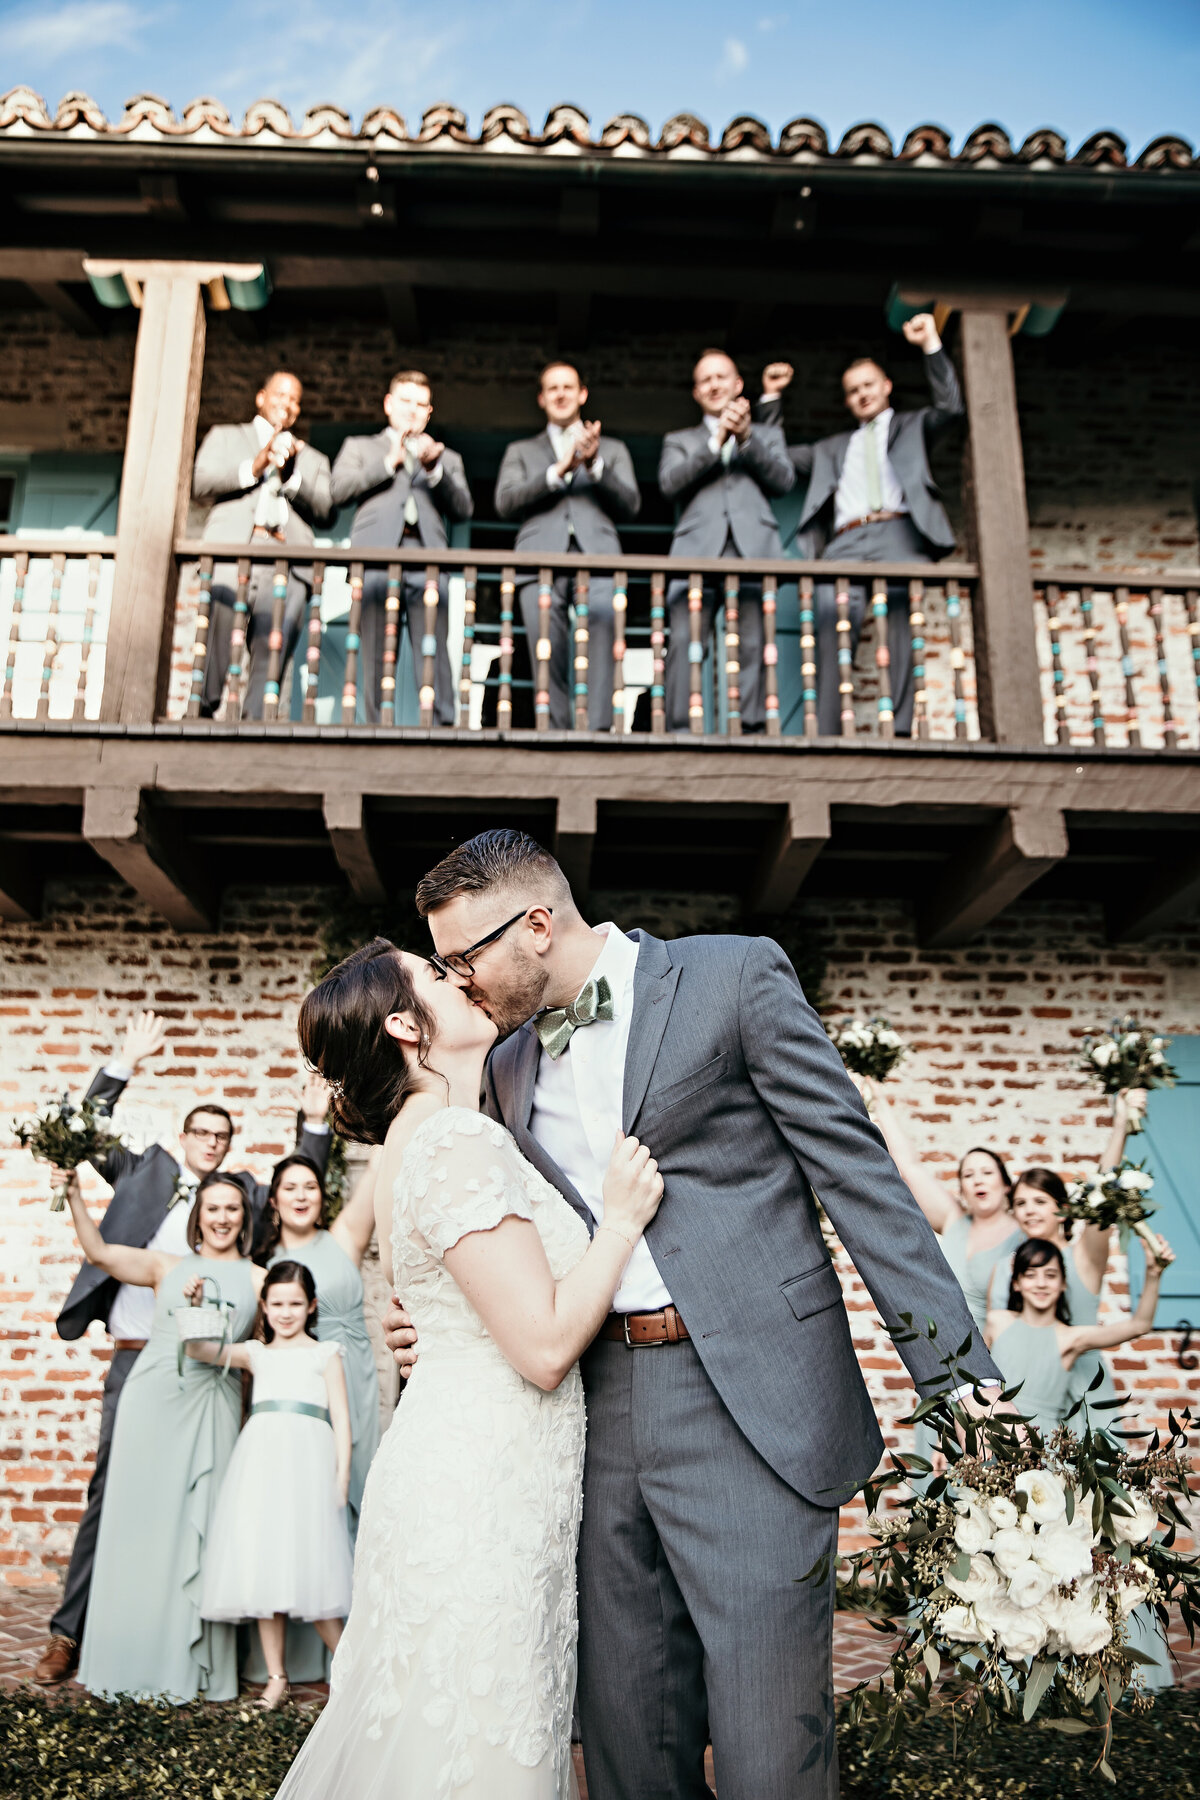 A picture of a bridal couple kissing in front of their vintage wedding venue as their wedding party stands behind them clapping and cheering them on